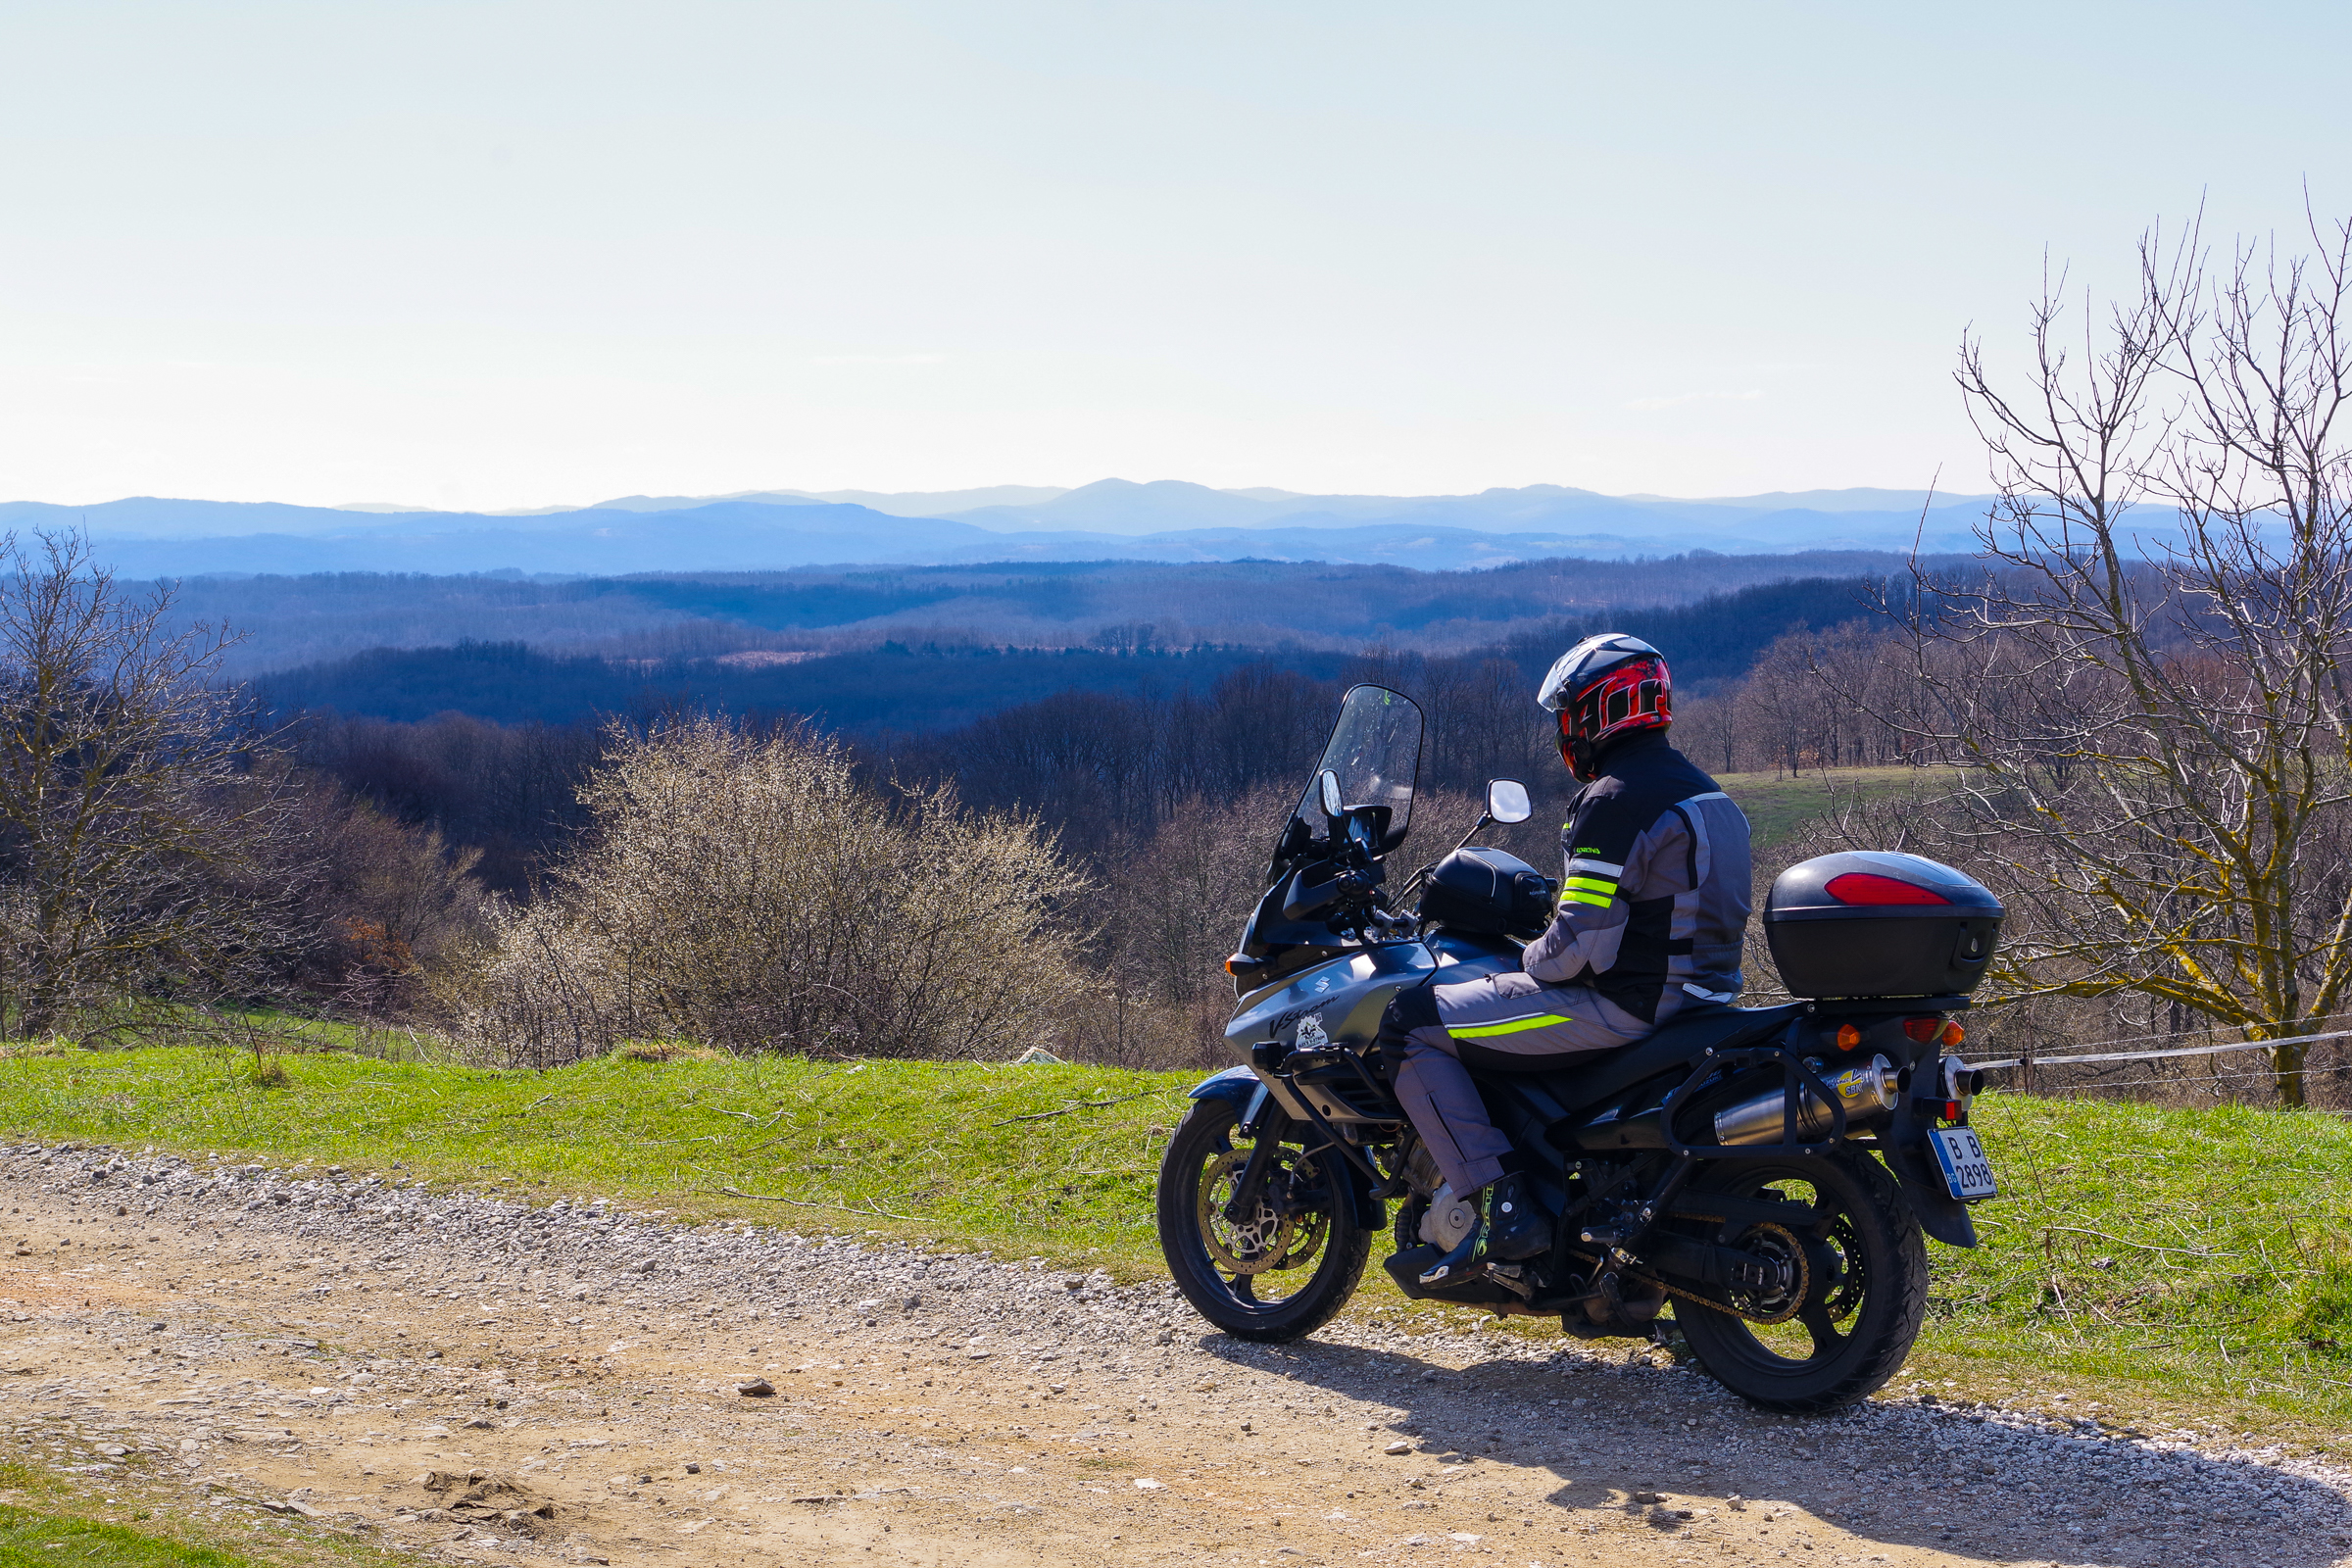 Motorcycle on beautiful mountain view